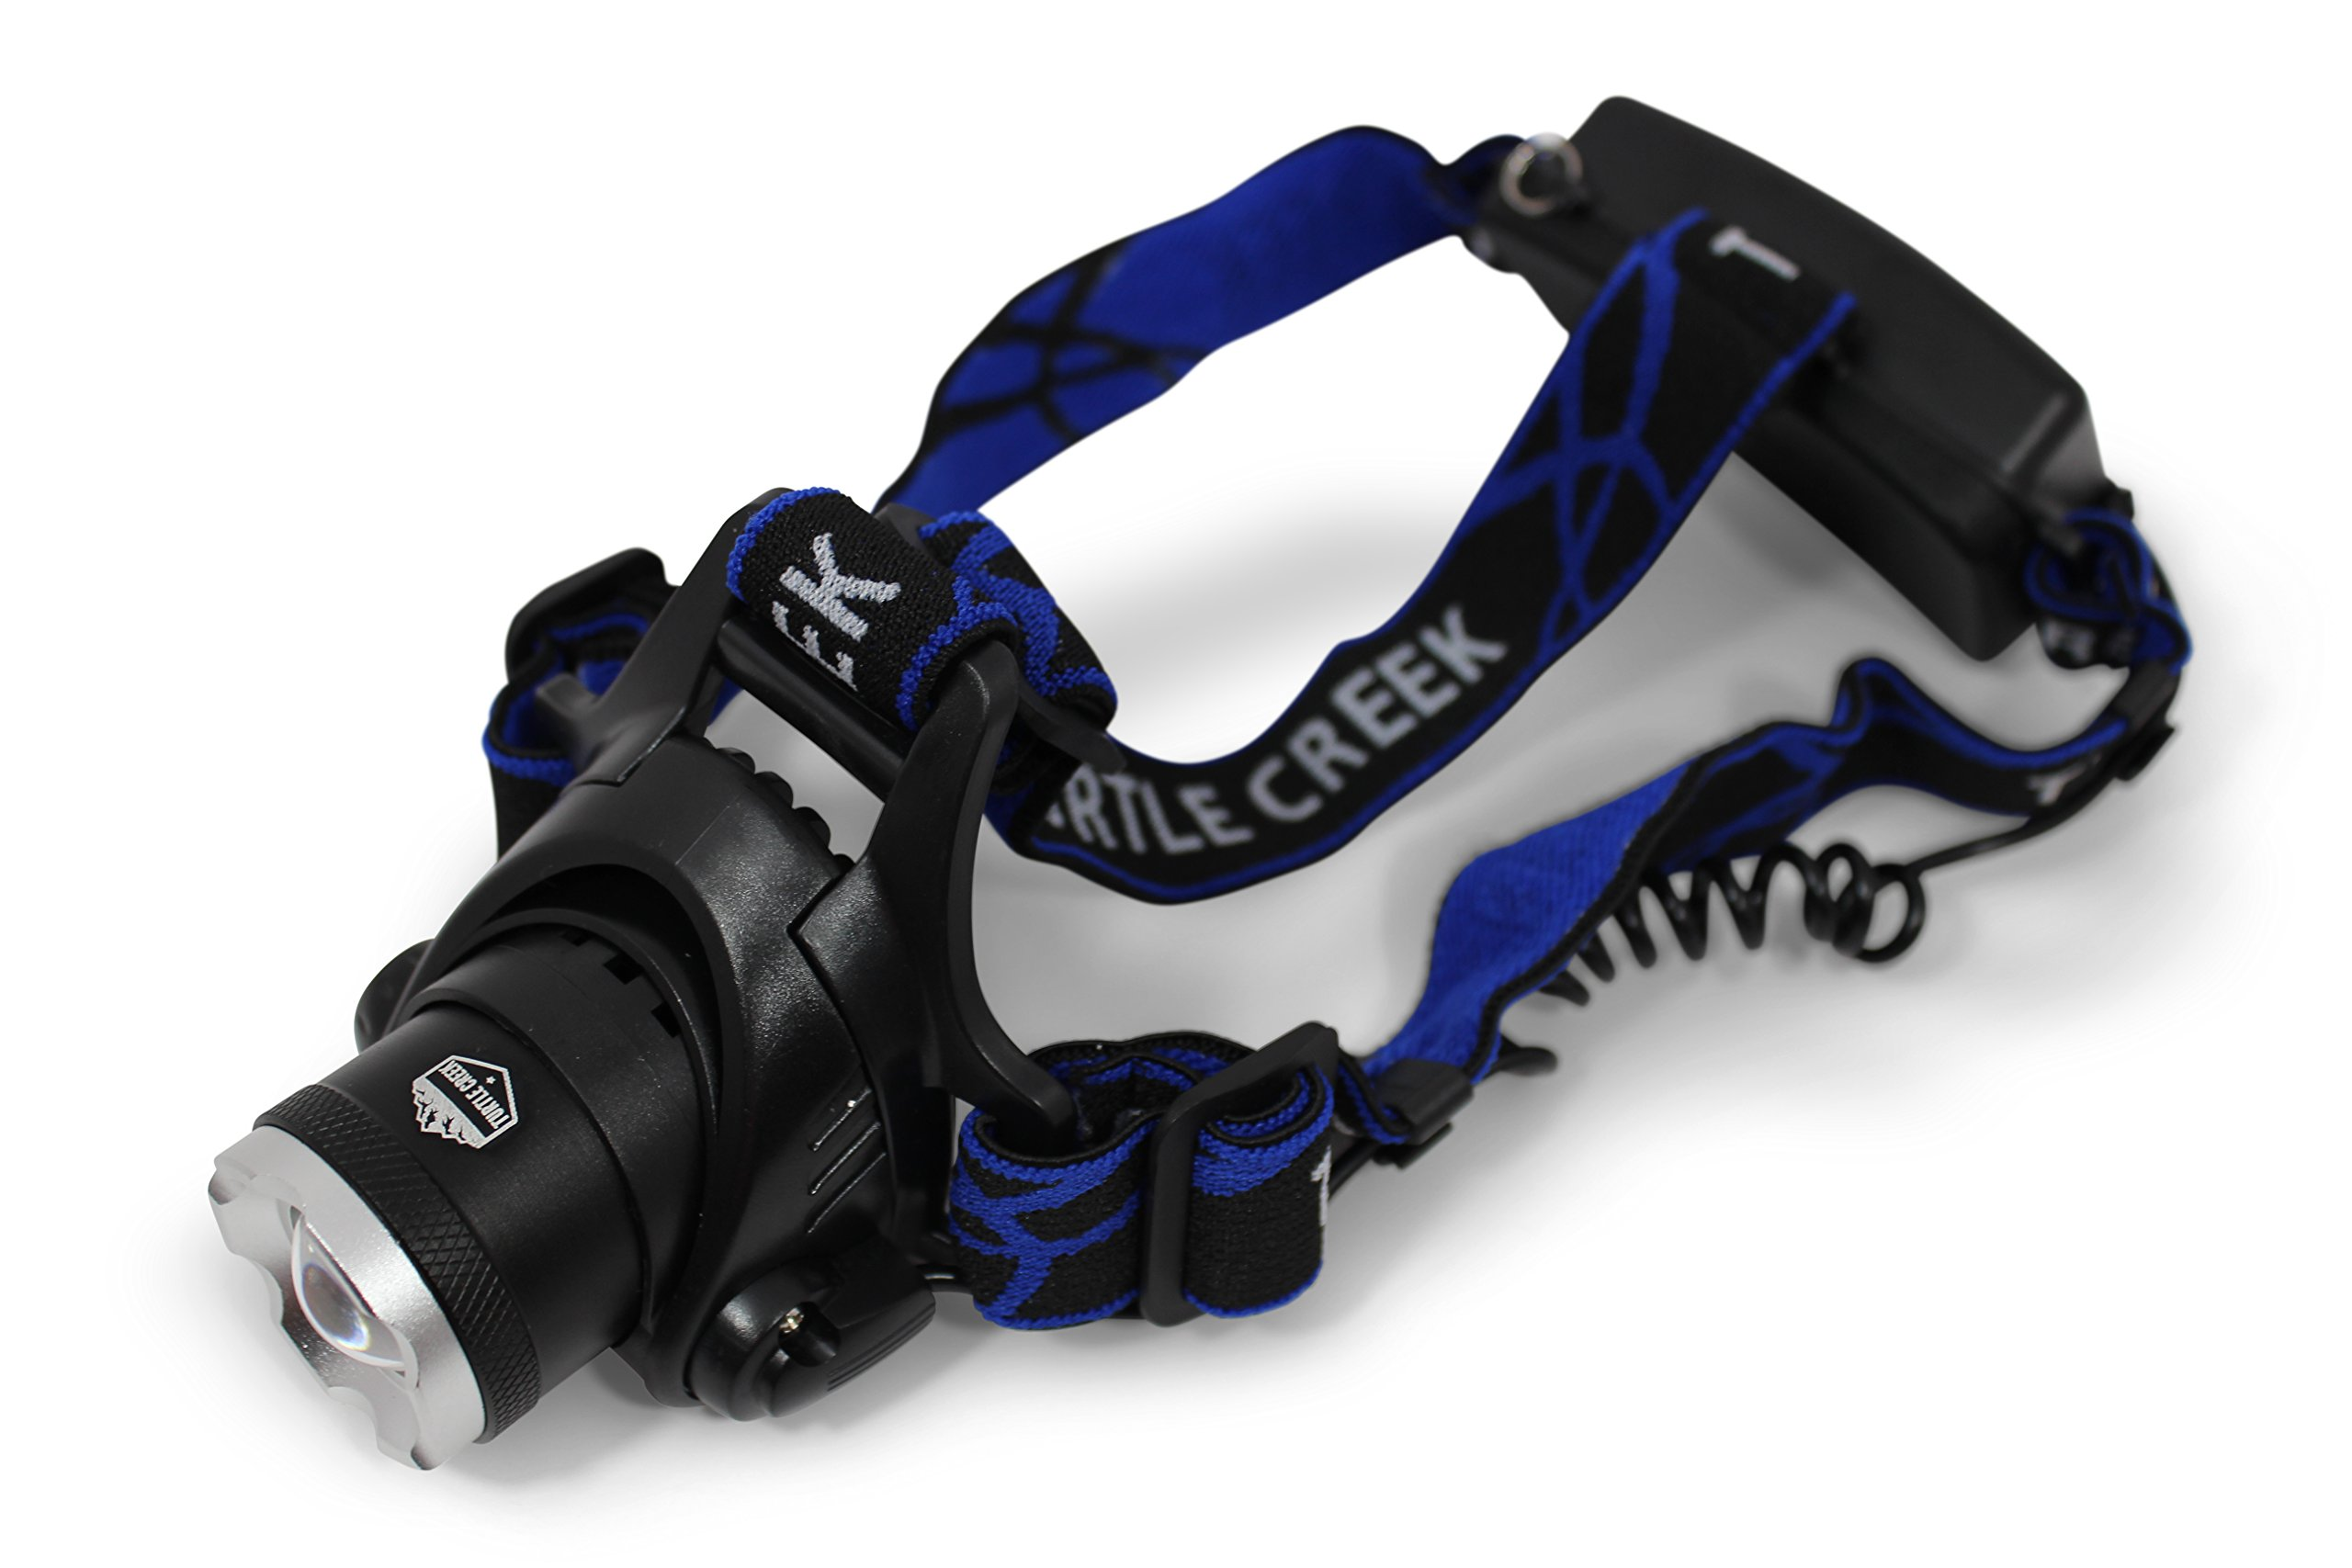 Turtle Creek LED Headlamp - Camping Headlamp - Best Tactical Headlamp - Durable Hiking Headlamp - Bright Fishing Headlamp and Hunting Headlamp - Cree LED with 18650 Batteries